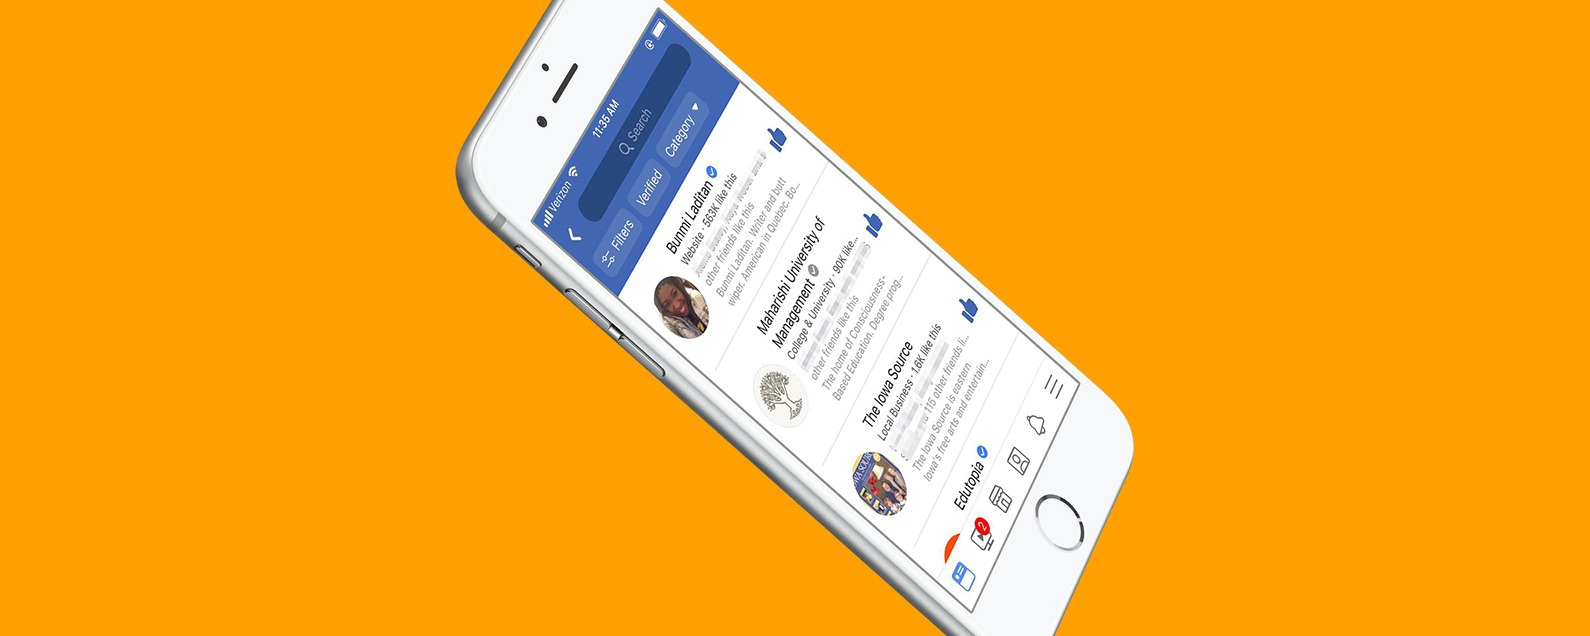 How to Find Liked Facebook Pages & Unlike Them on iPhone